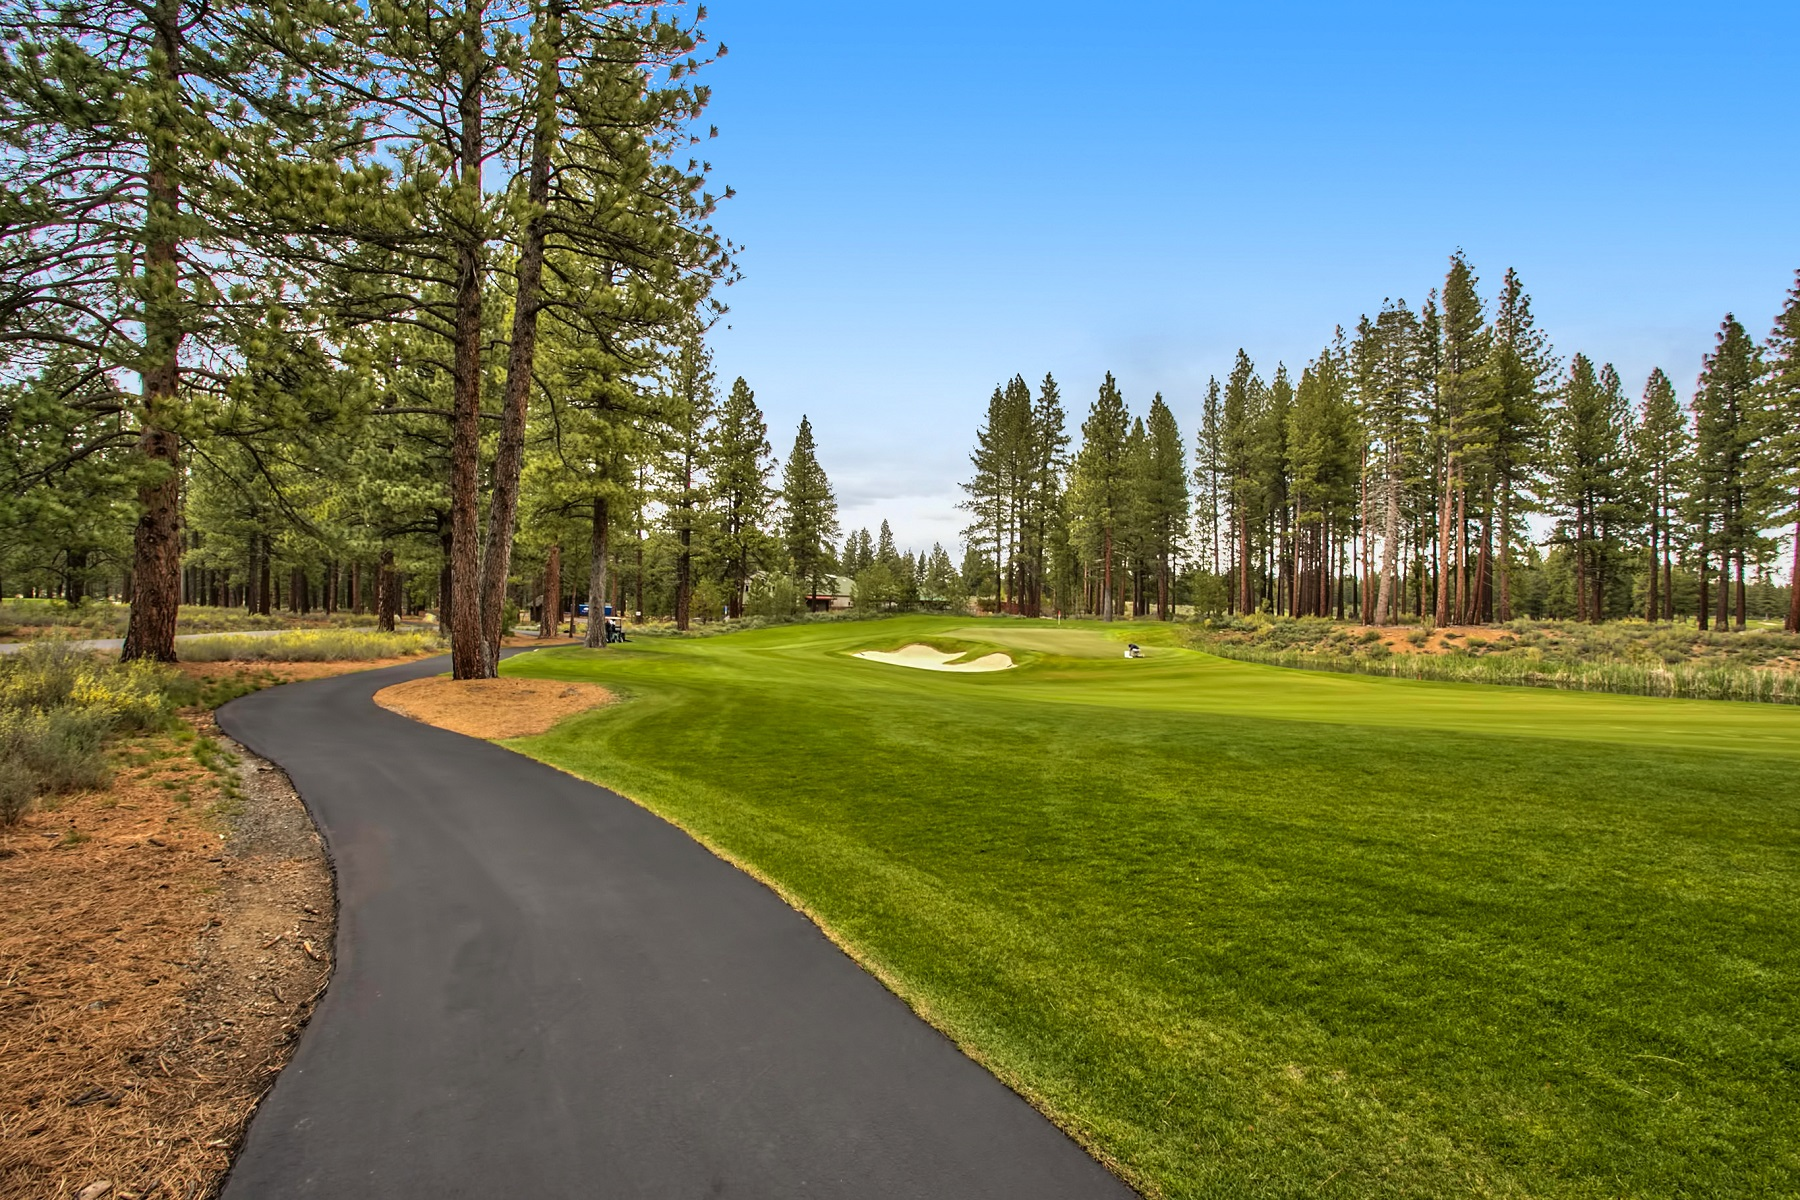 Property for Active at 12360 Caleb Drive, Truckee CA 96161 12360 Caleb Drive Truckee, California 96161 United States